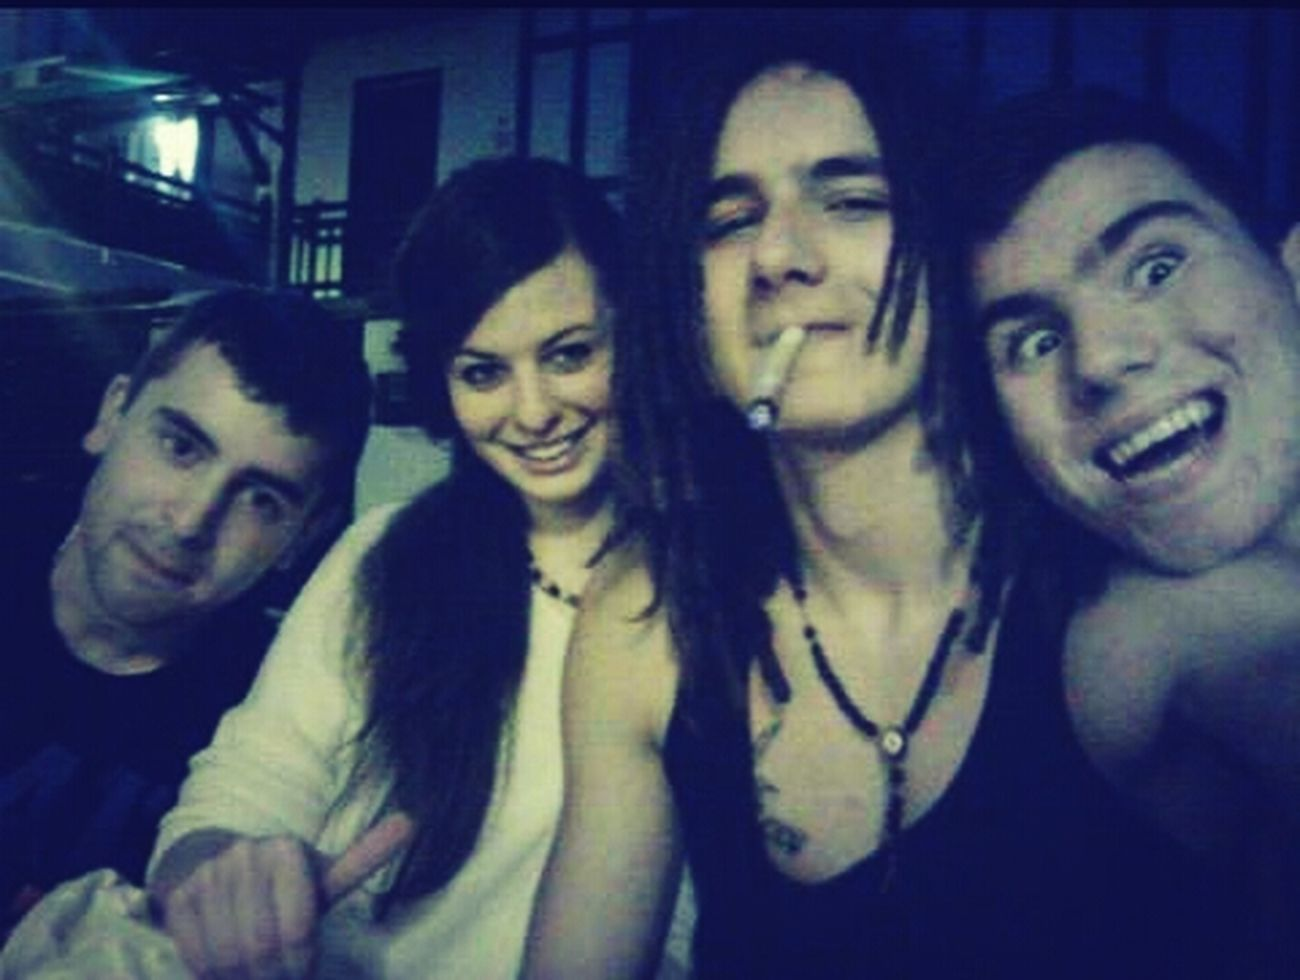 whit My Friends Smoking Weed Fumando Hierba ;) Smile